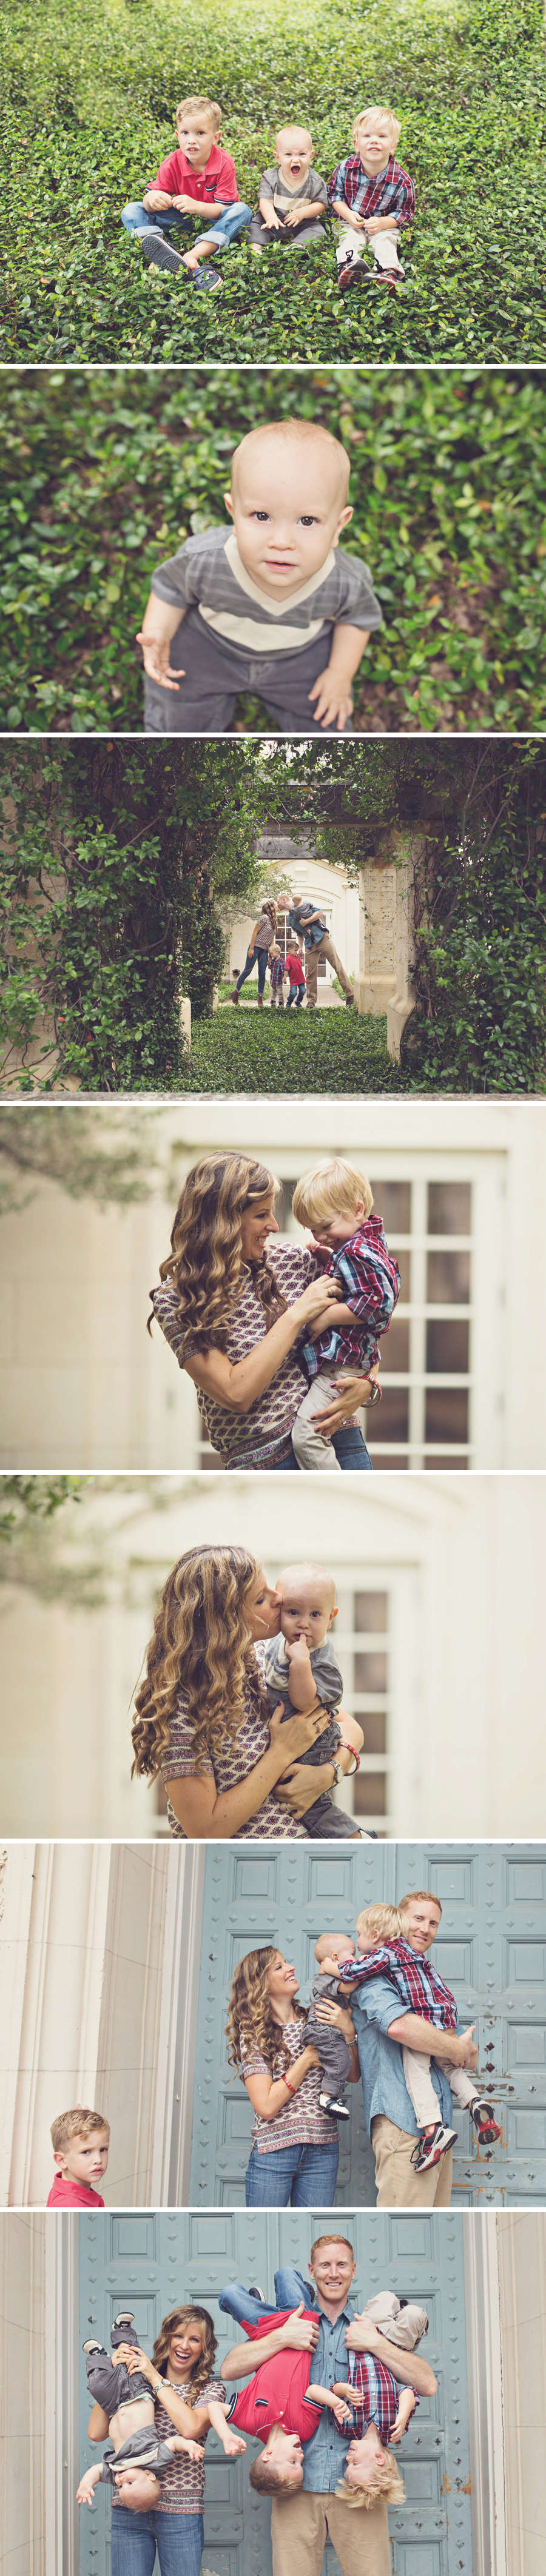 Austin-Family-PhotographerG001